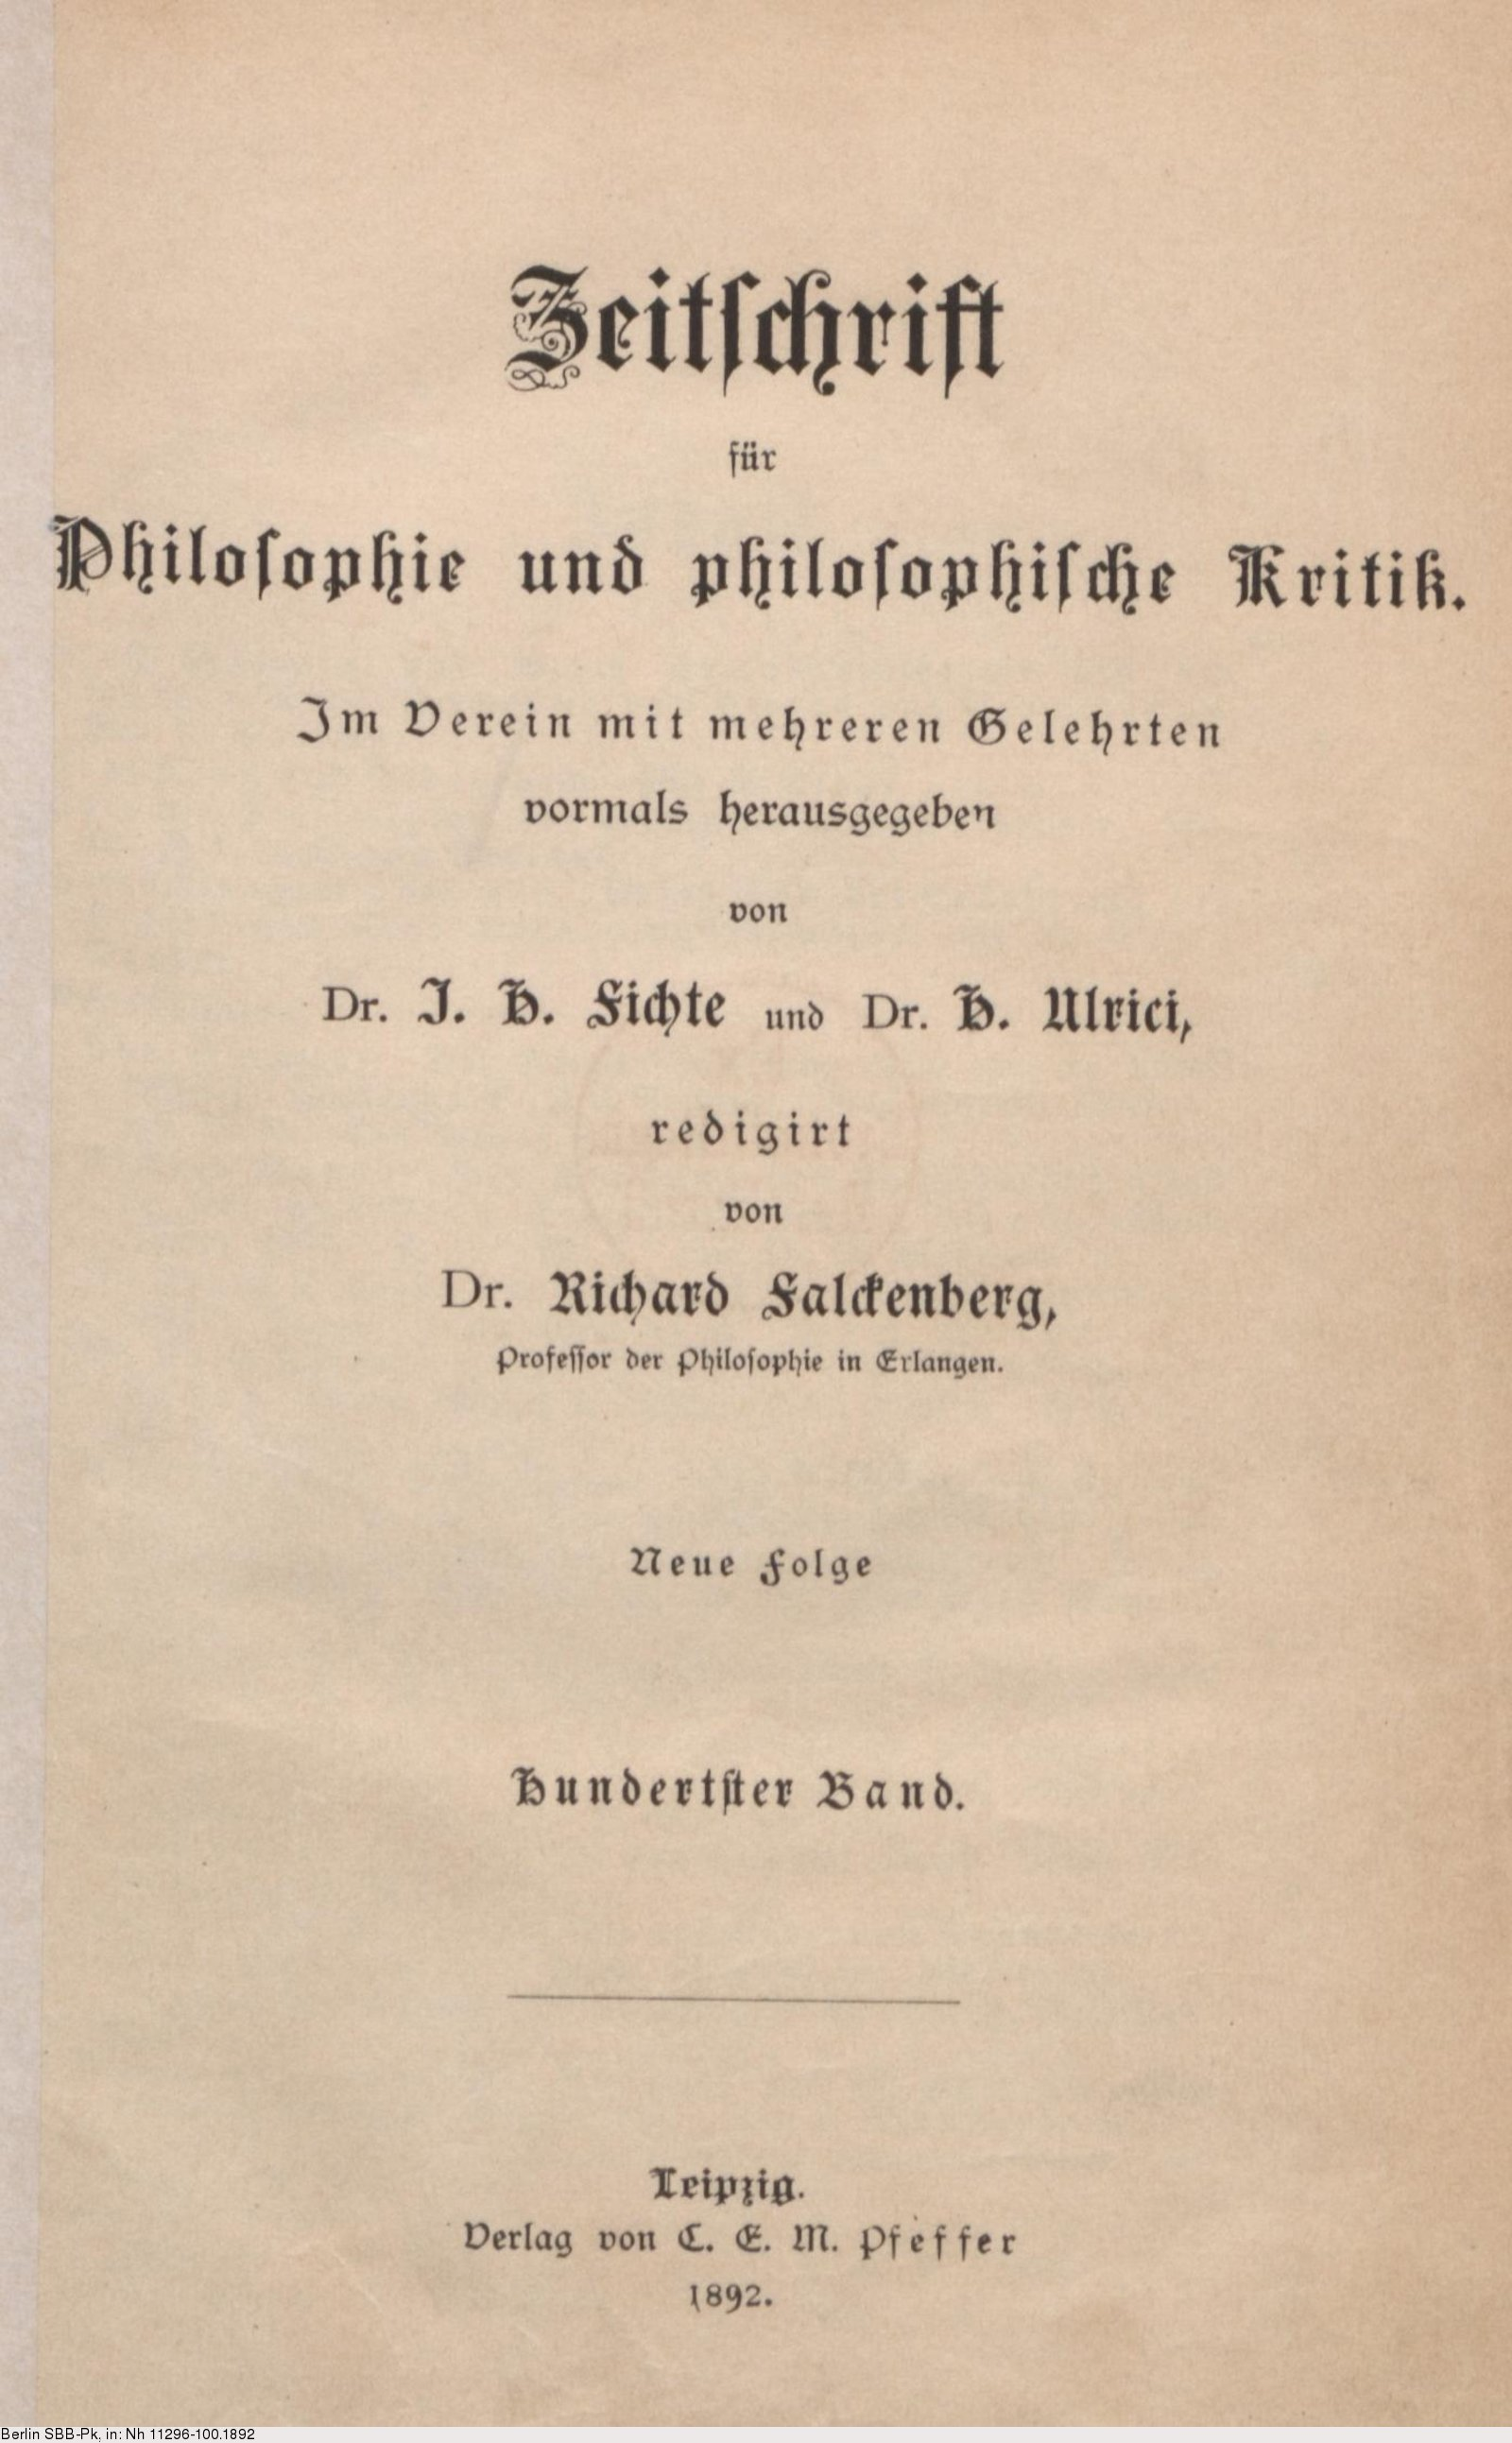 essay frege sinn und bedeutung Abstract gottlob frege begins his essay sinn und bedeutung by stating a puzzle (which we follow the tradition in calling 'frege's puzzle') raised by the con.